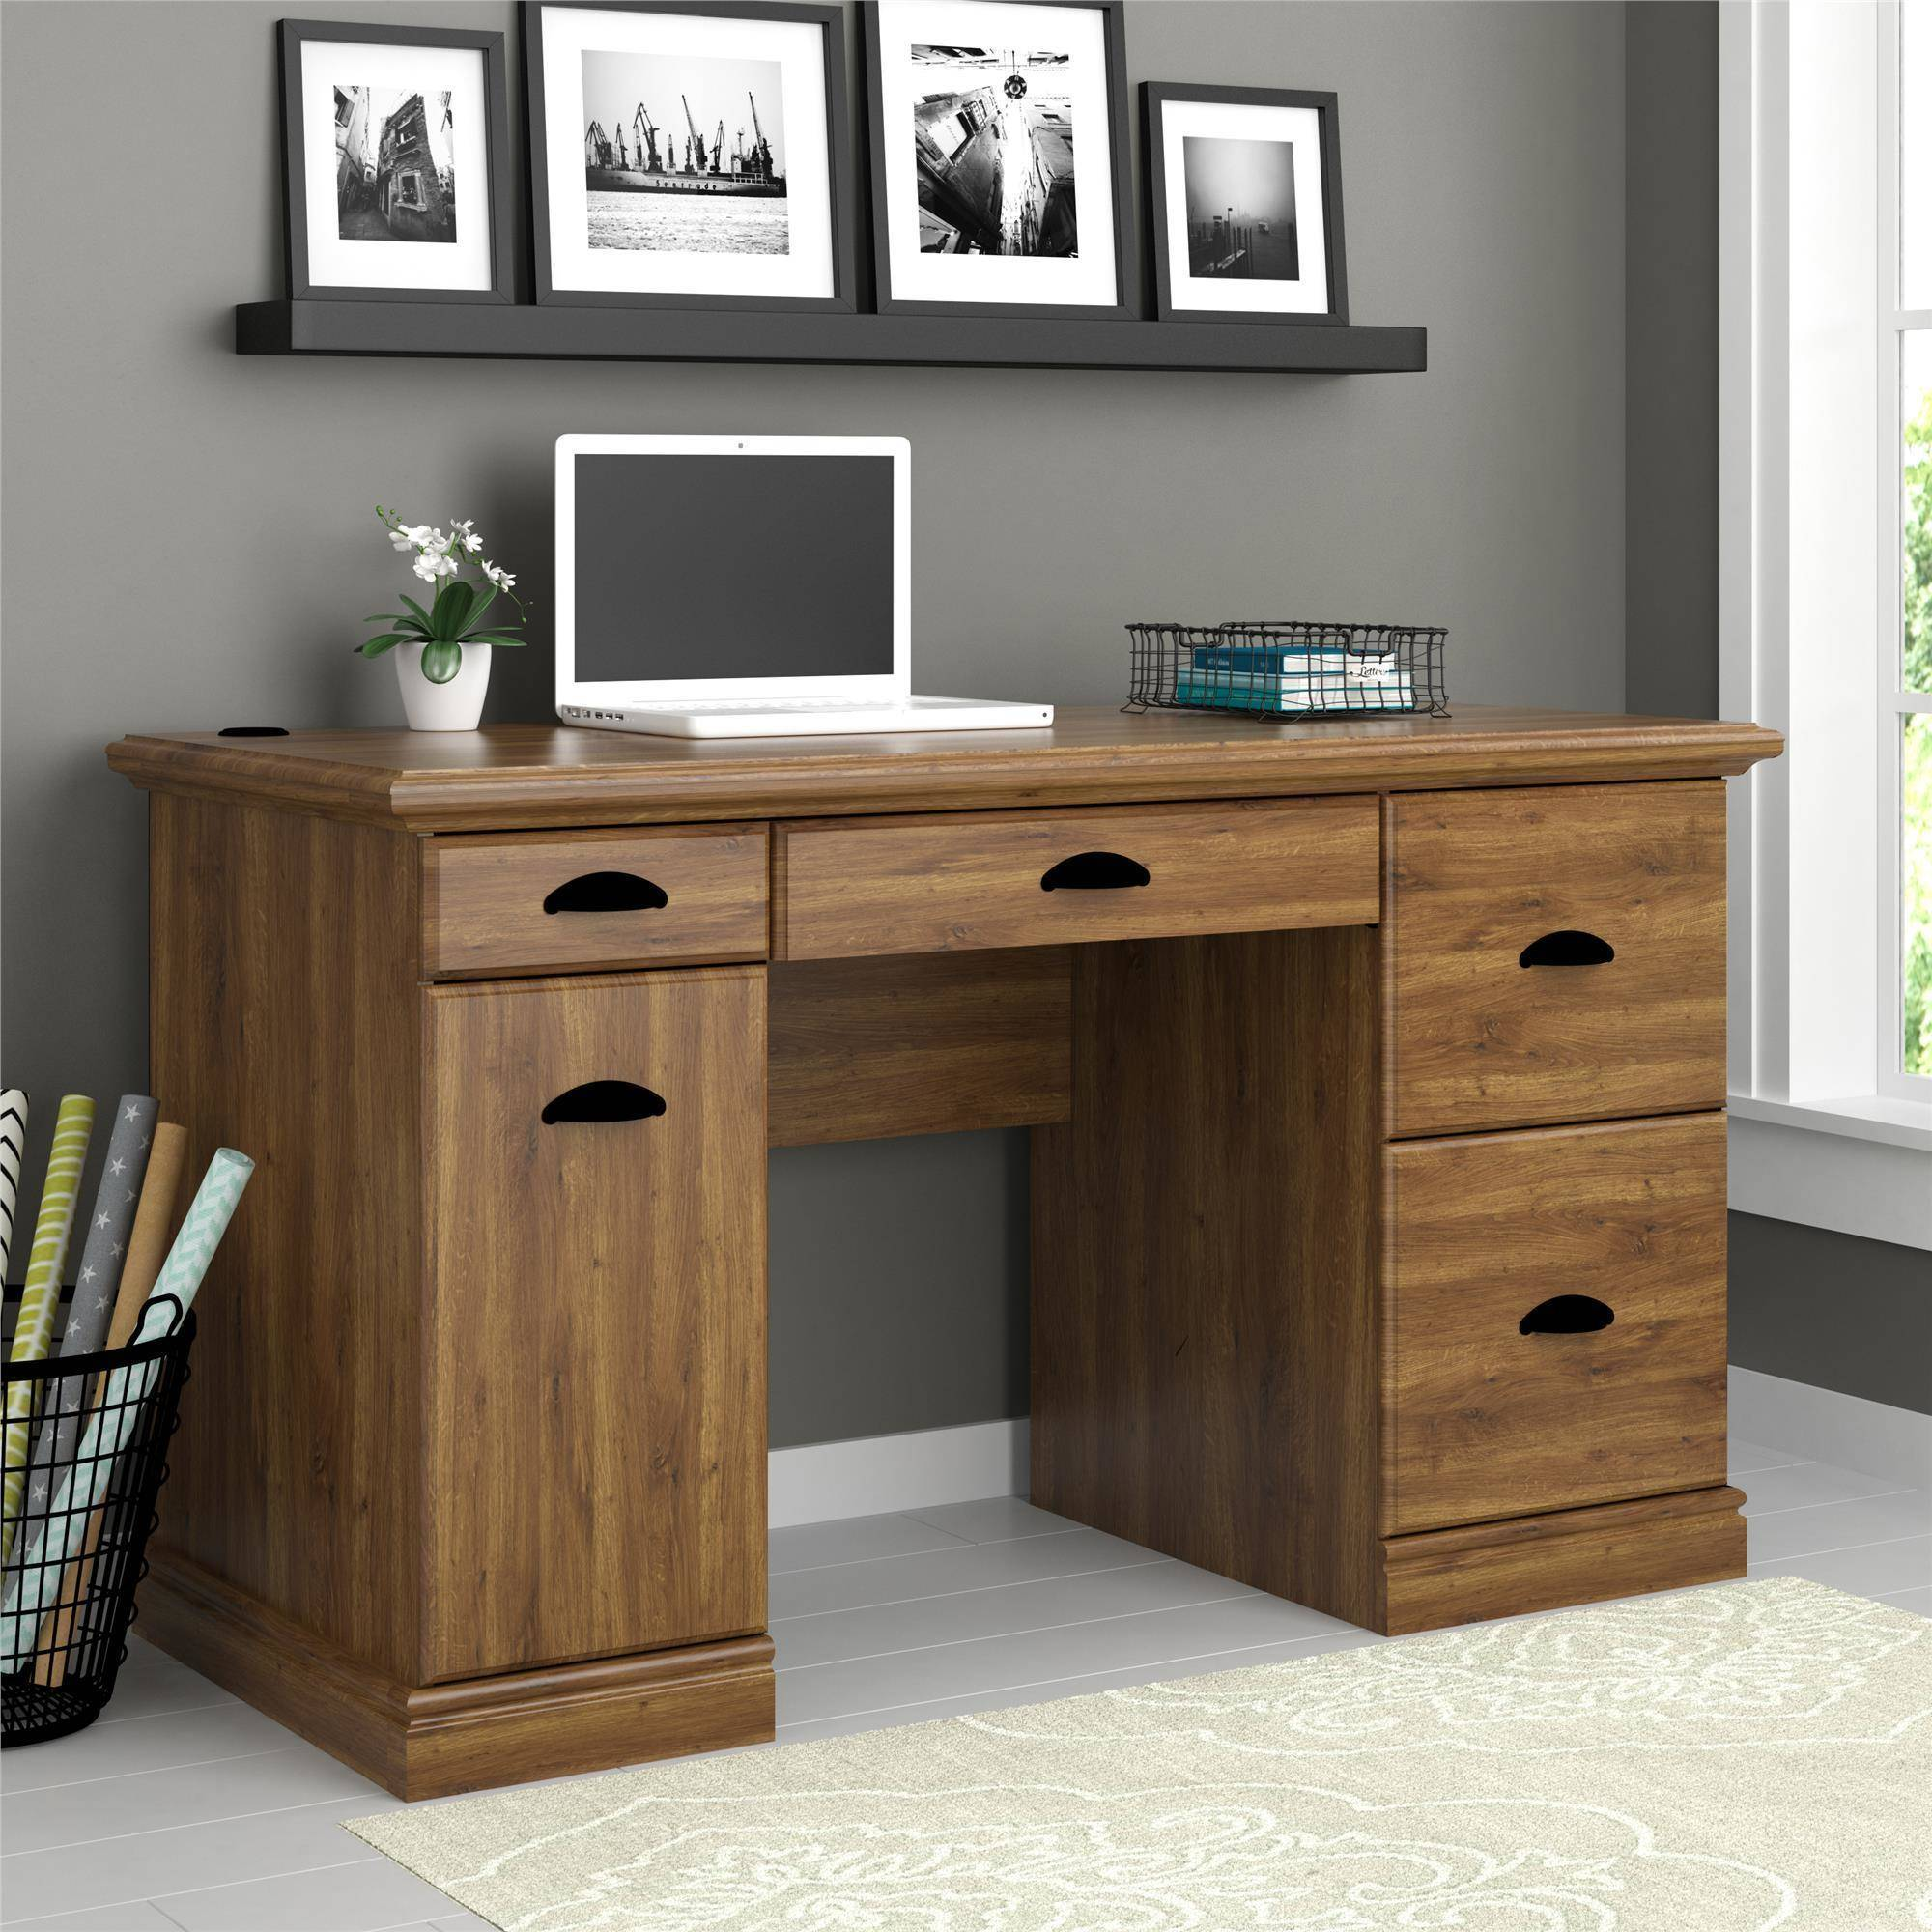 . Better Homes and Gardens Computer Desk  Brown Oak   Walmart com